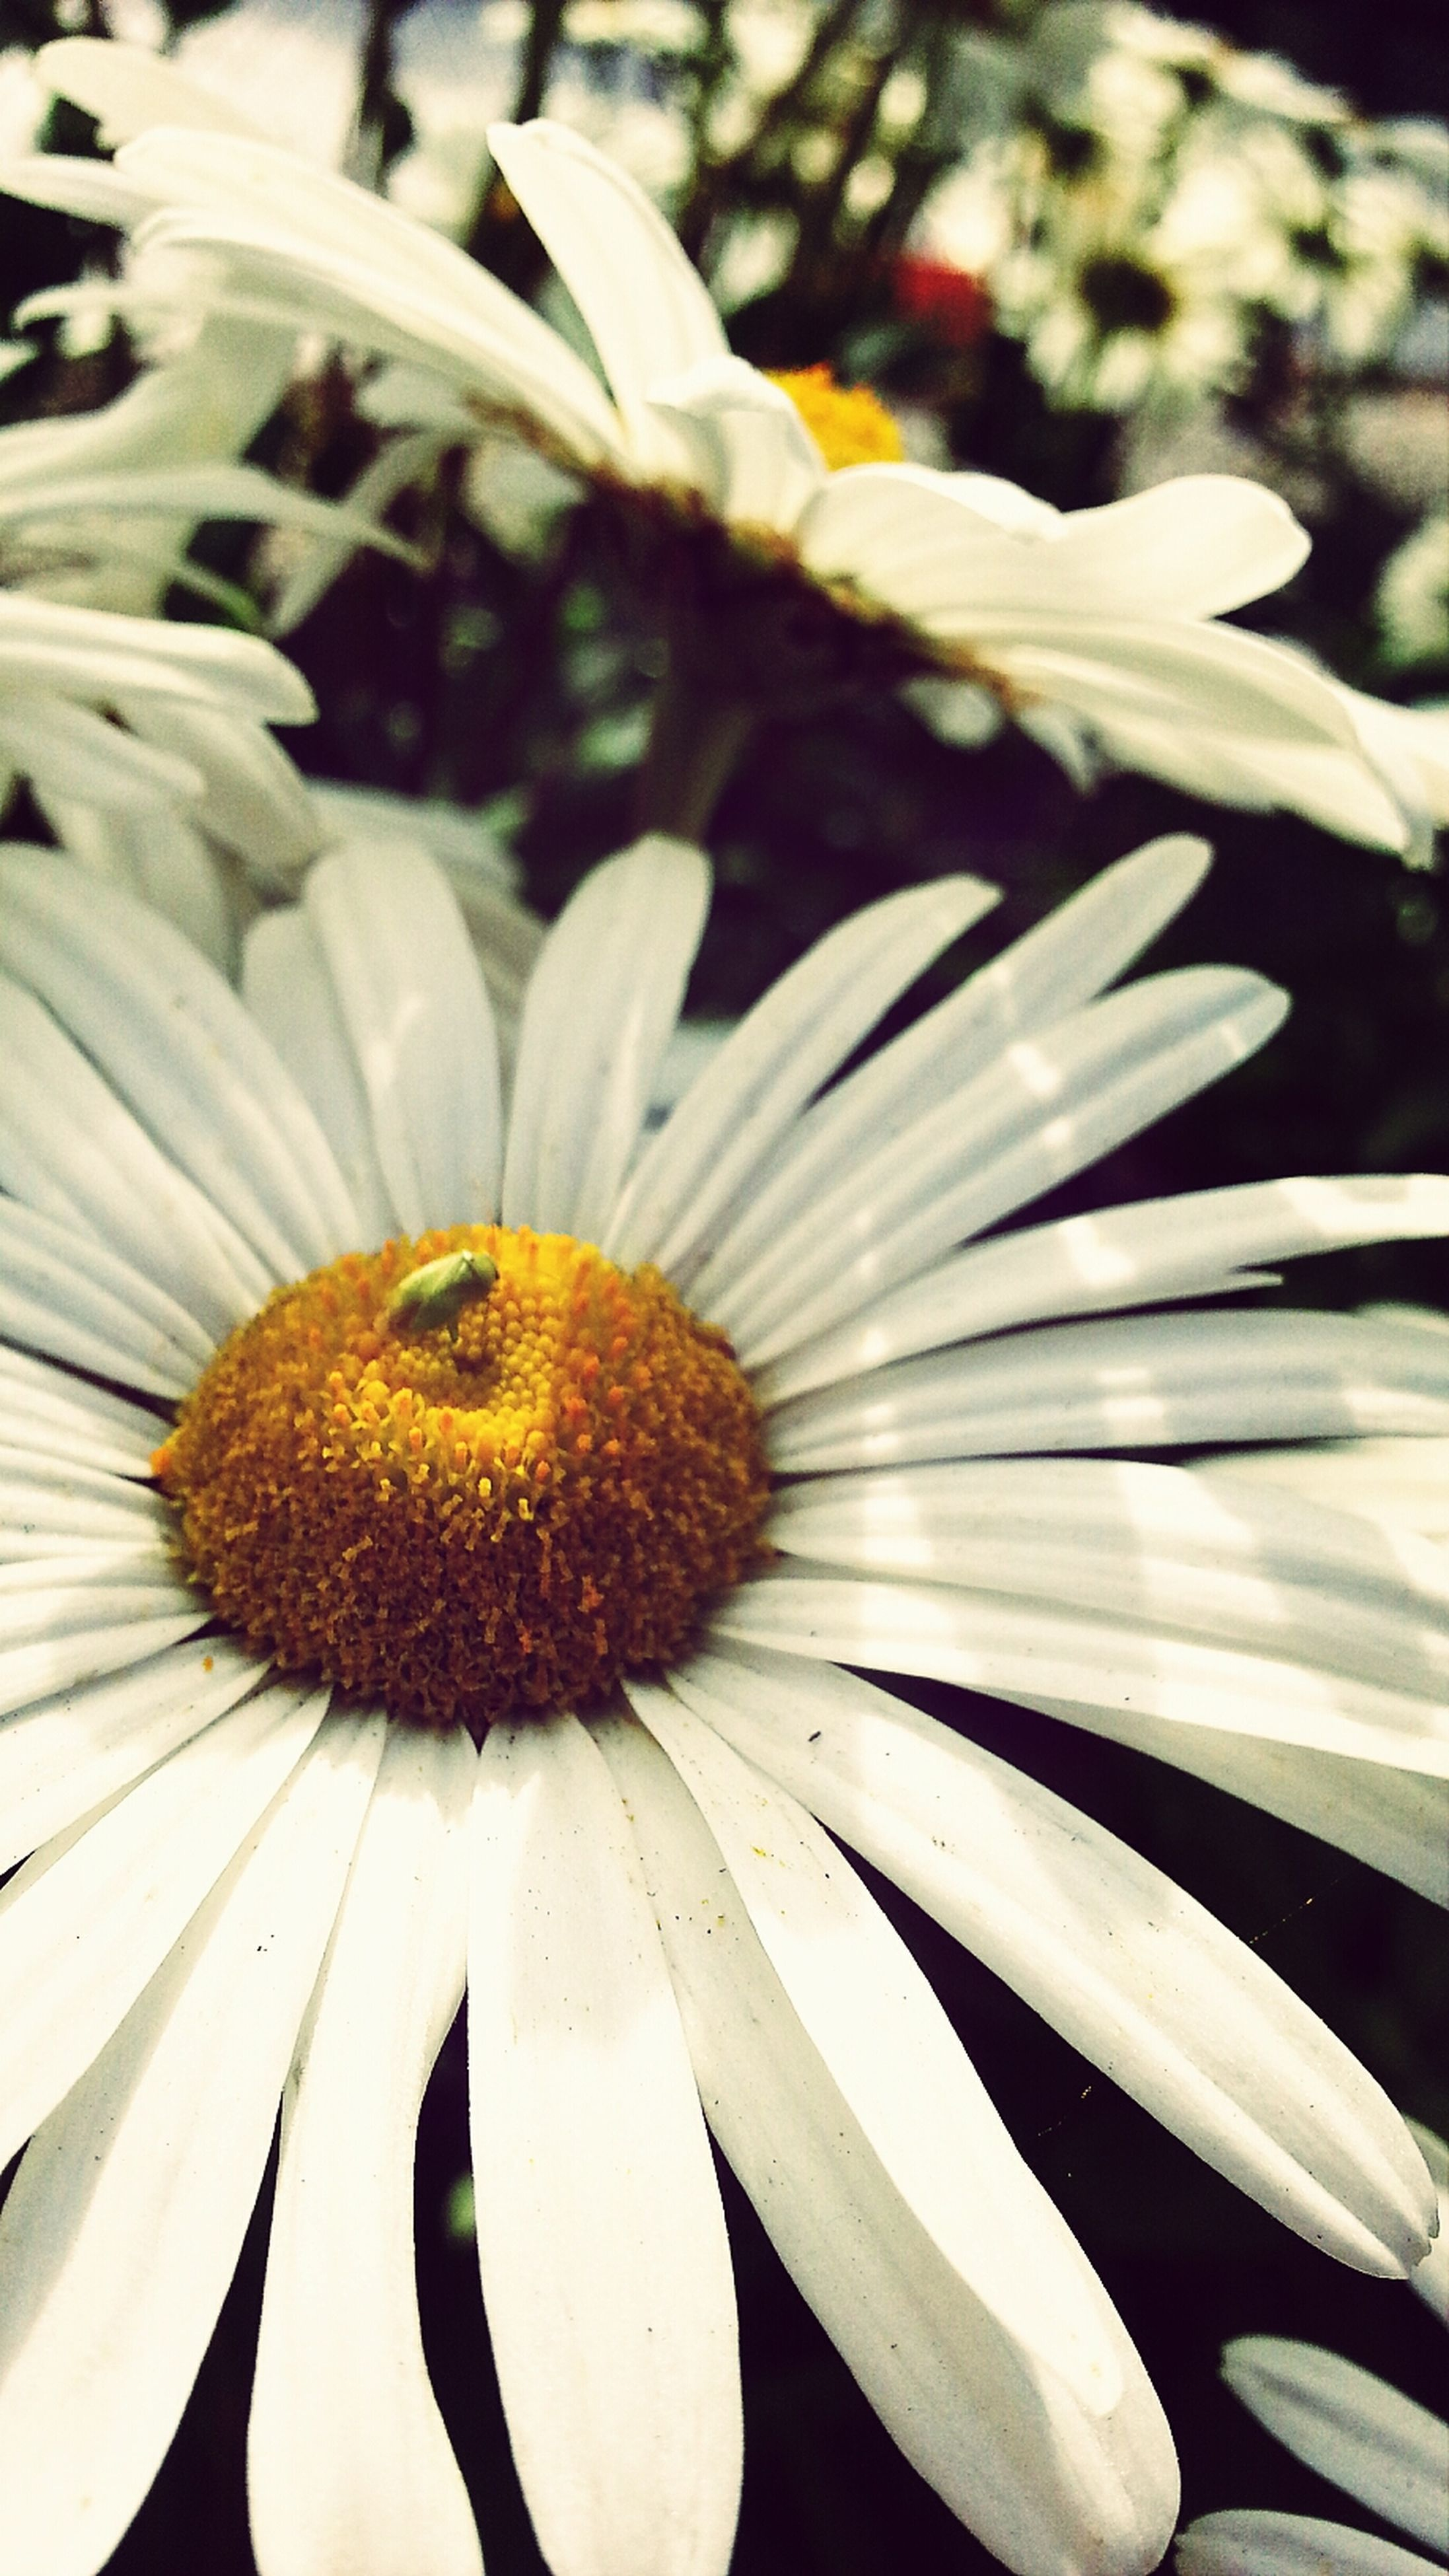 flower, petal, flower head, freshness, fragility, close-up, pollen, white color, beauty in nature, growth, nature, blooming, focus on foreground, stamen, plant, in bloom, single flower, no people, yellow, day